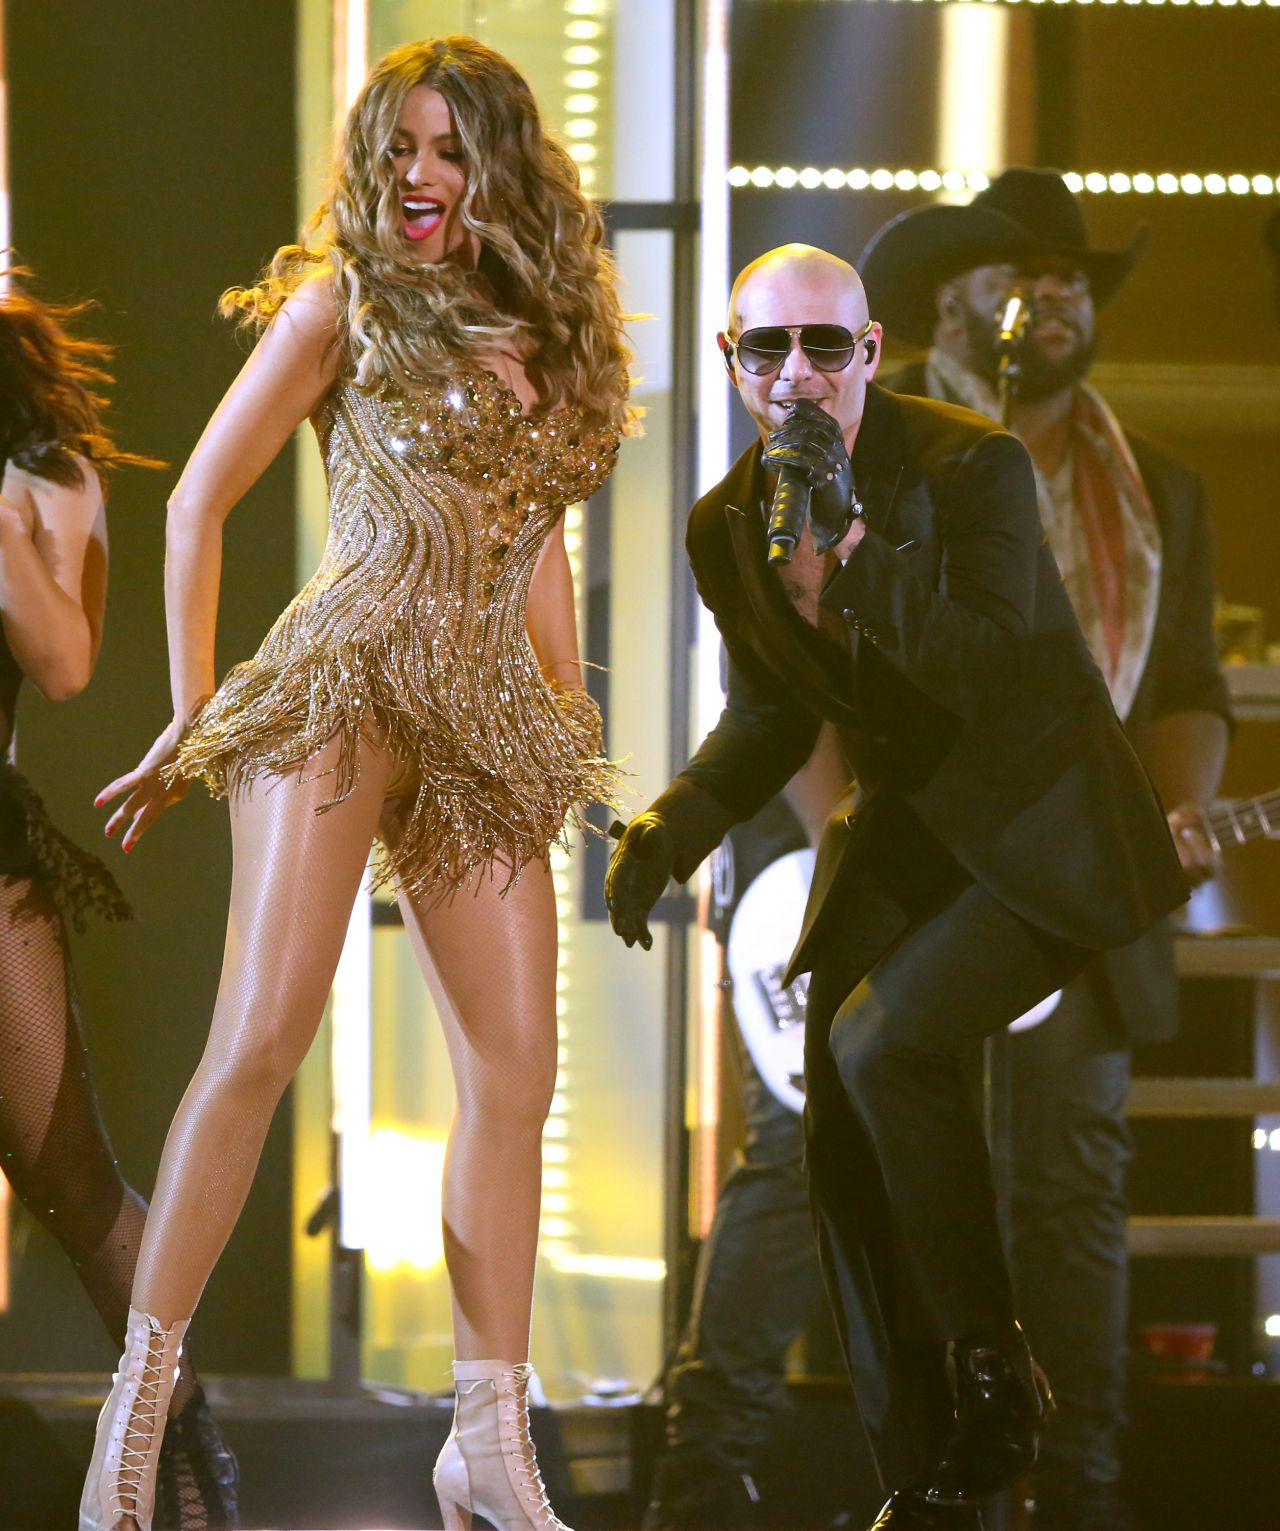 Sofia Vergara shows off sexy dance moves with Pitbull at the Grammy Awards 2016